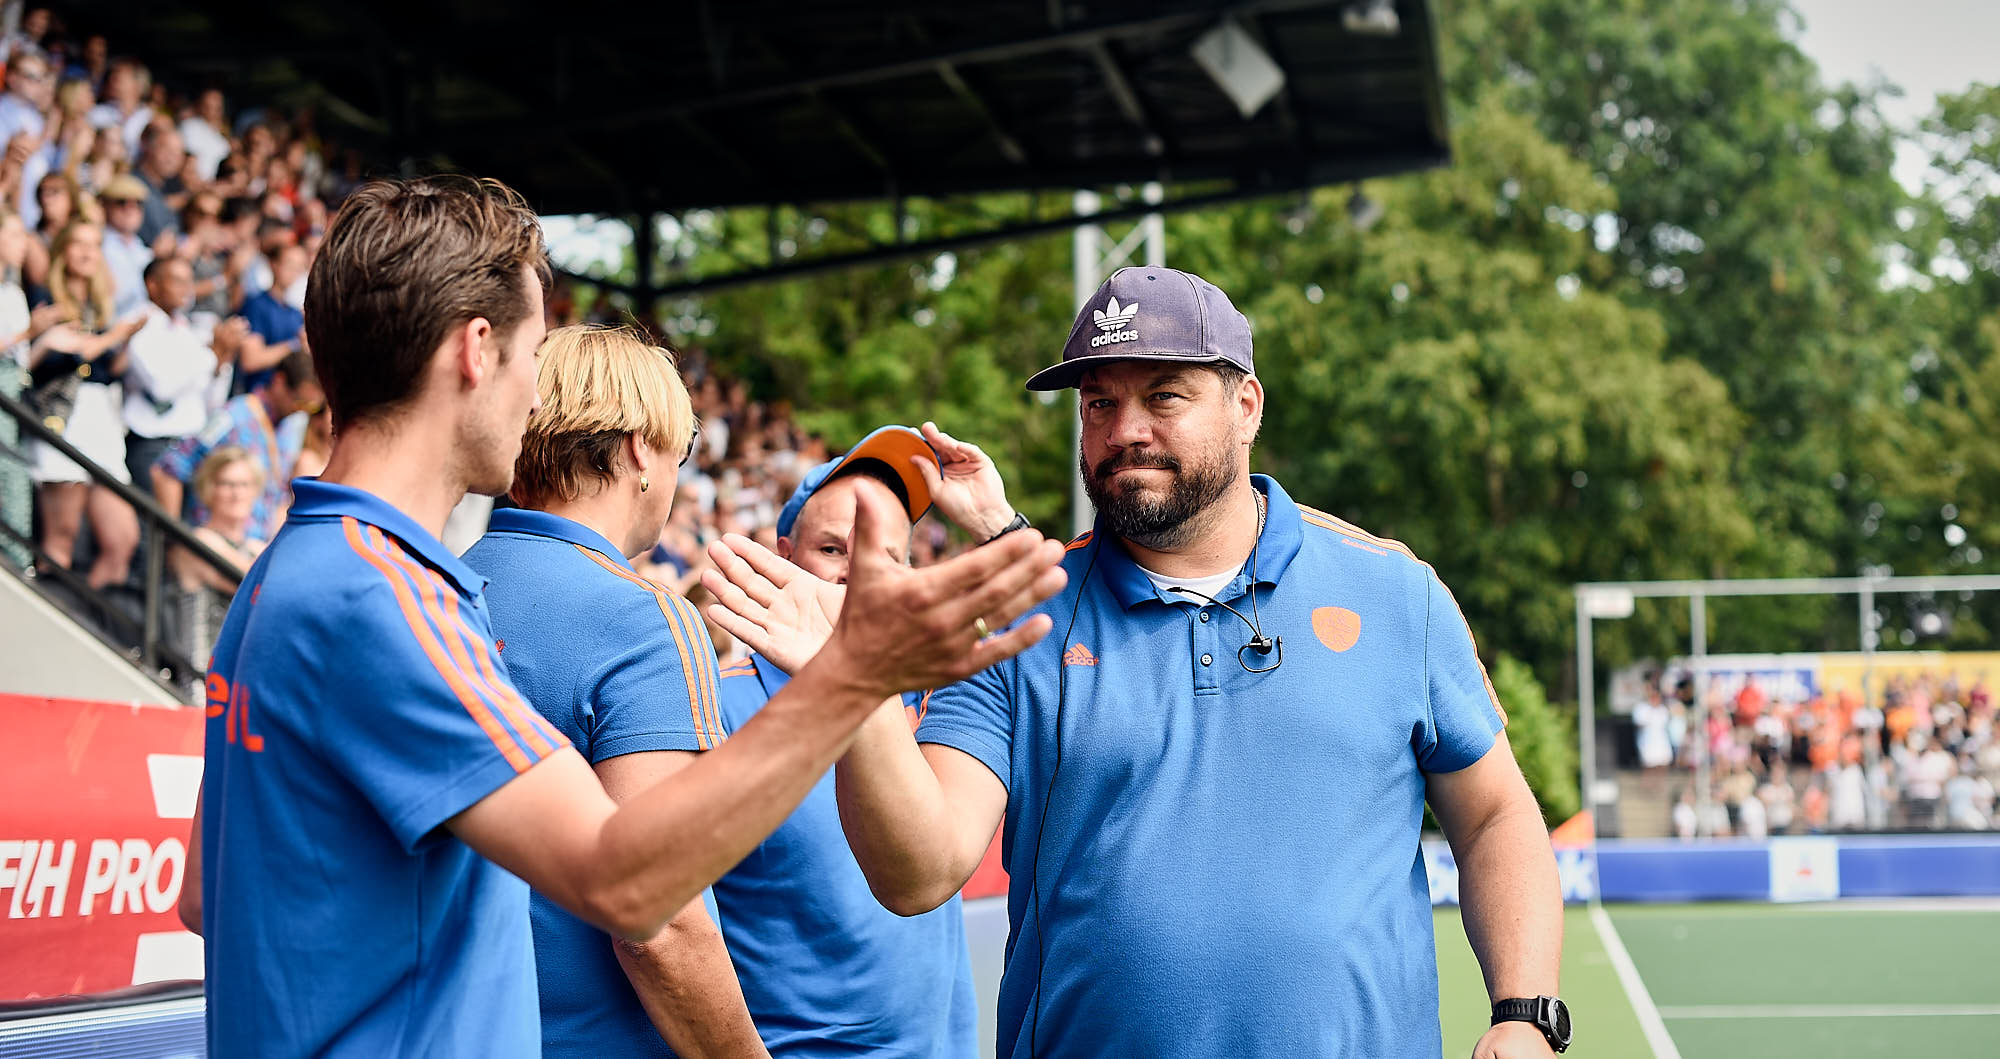 Dutch national hockey team coaches during the 2019 FIH Pro League Finals in Amsterdam